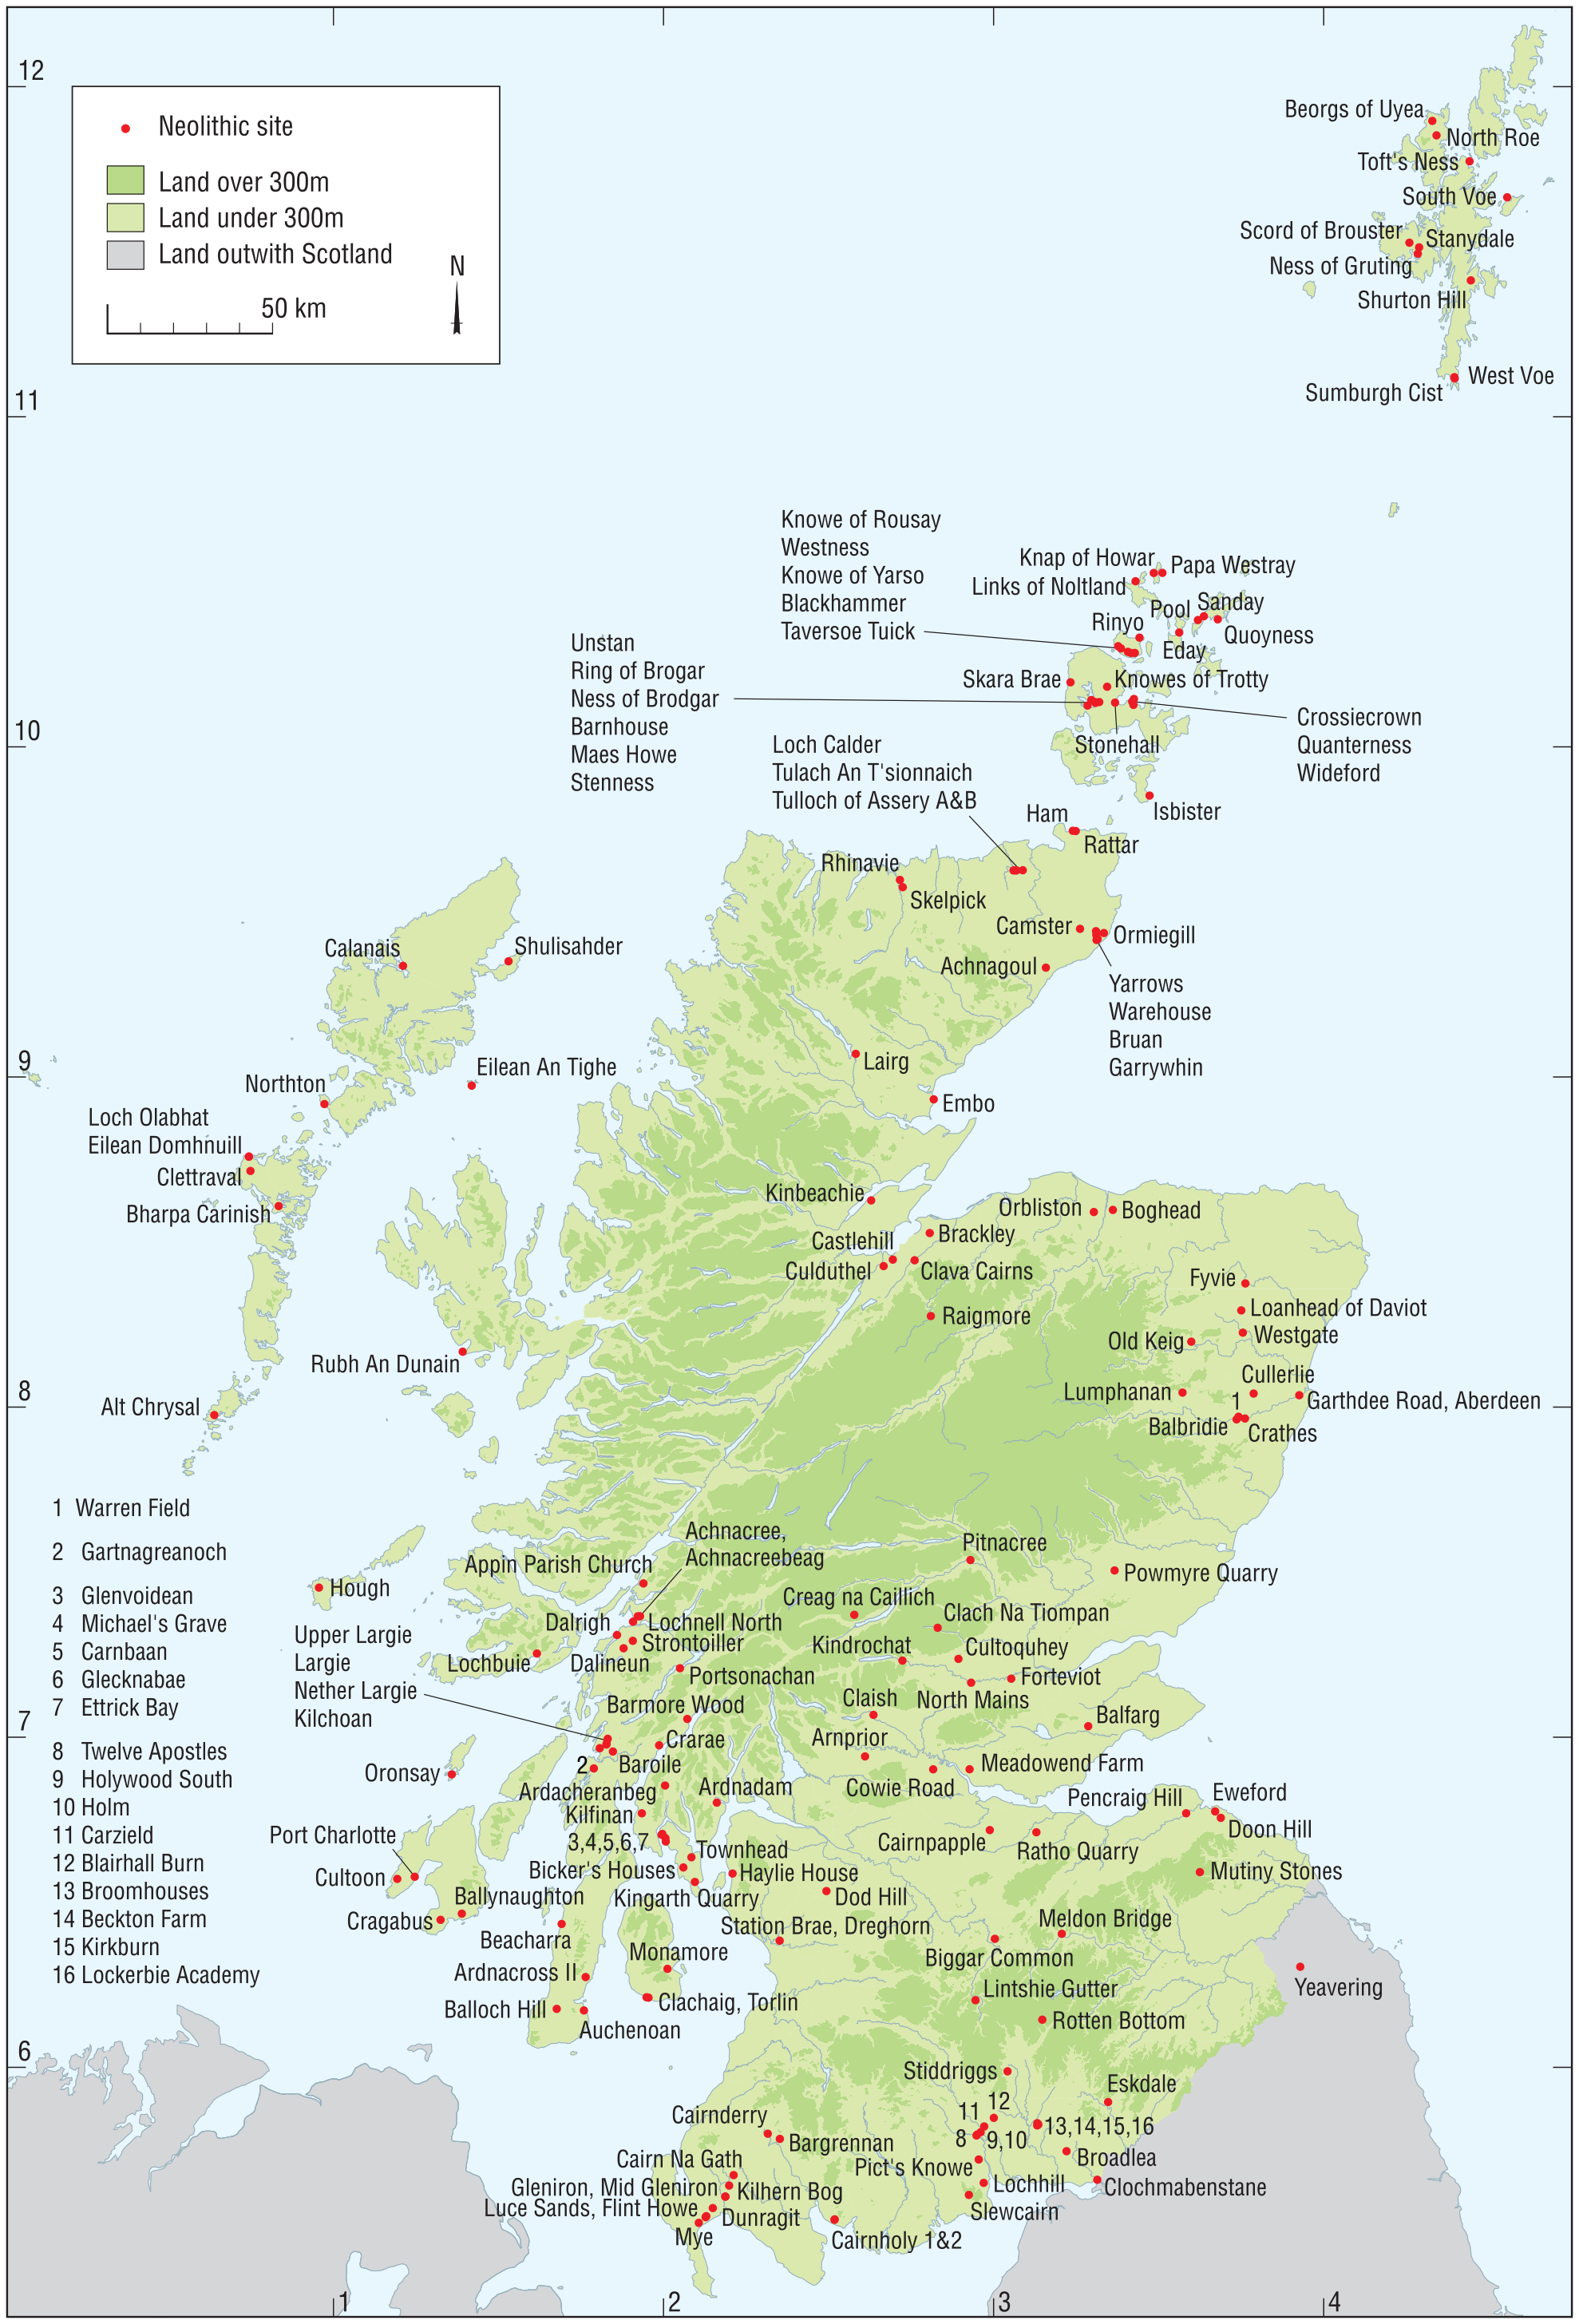 A map of Scotland showing the distribution of Neolithic sites referred to in text